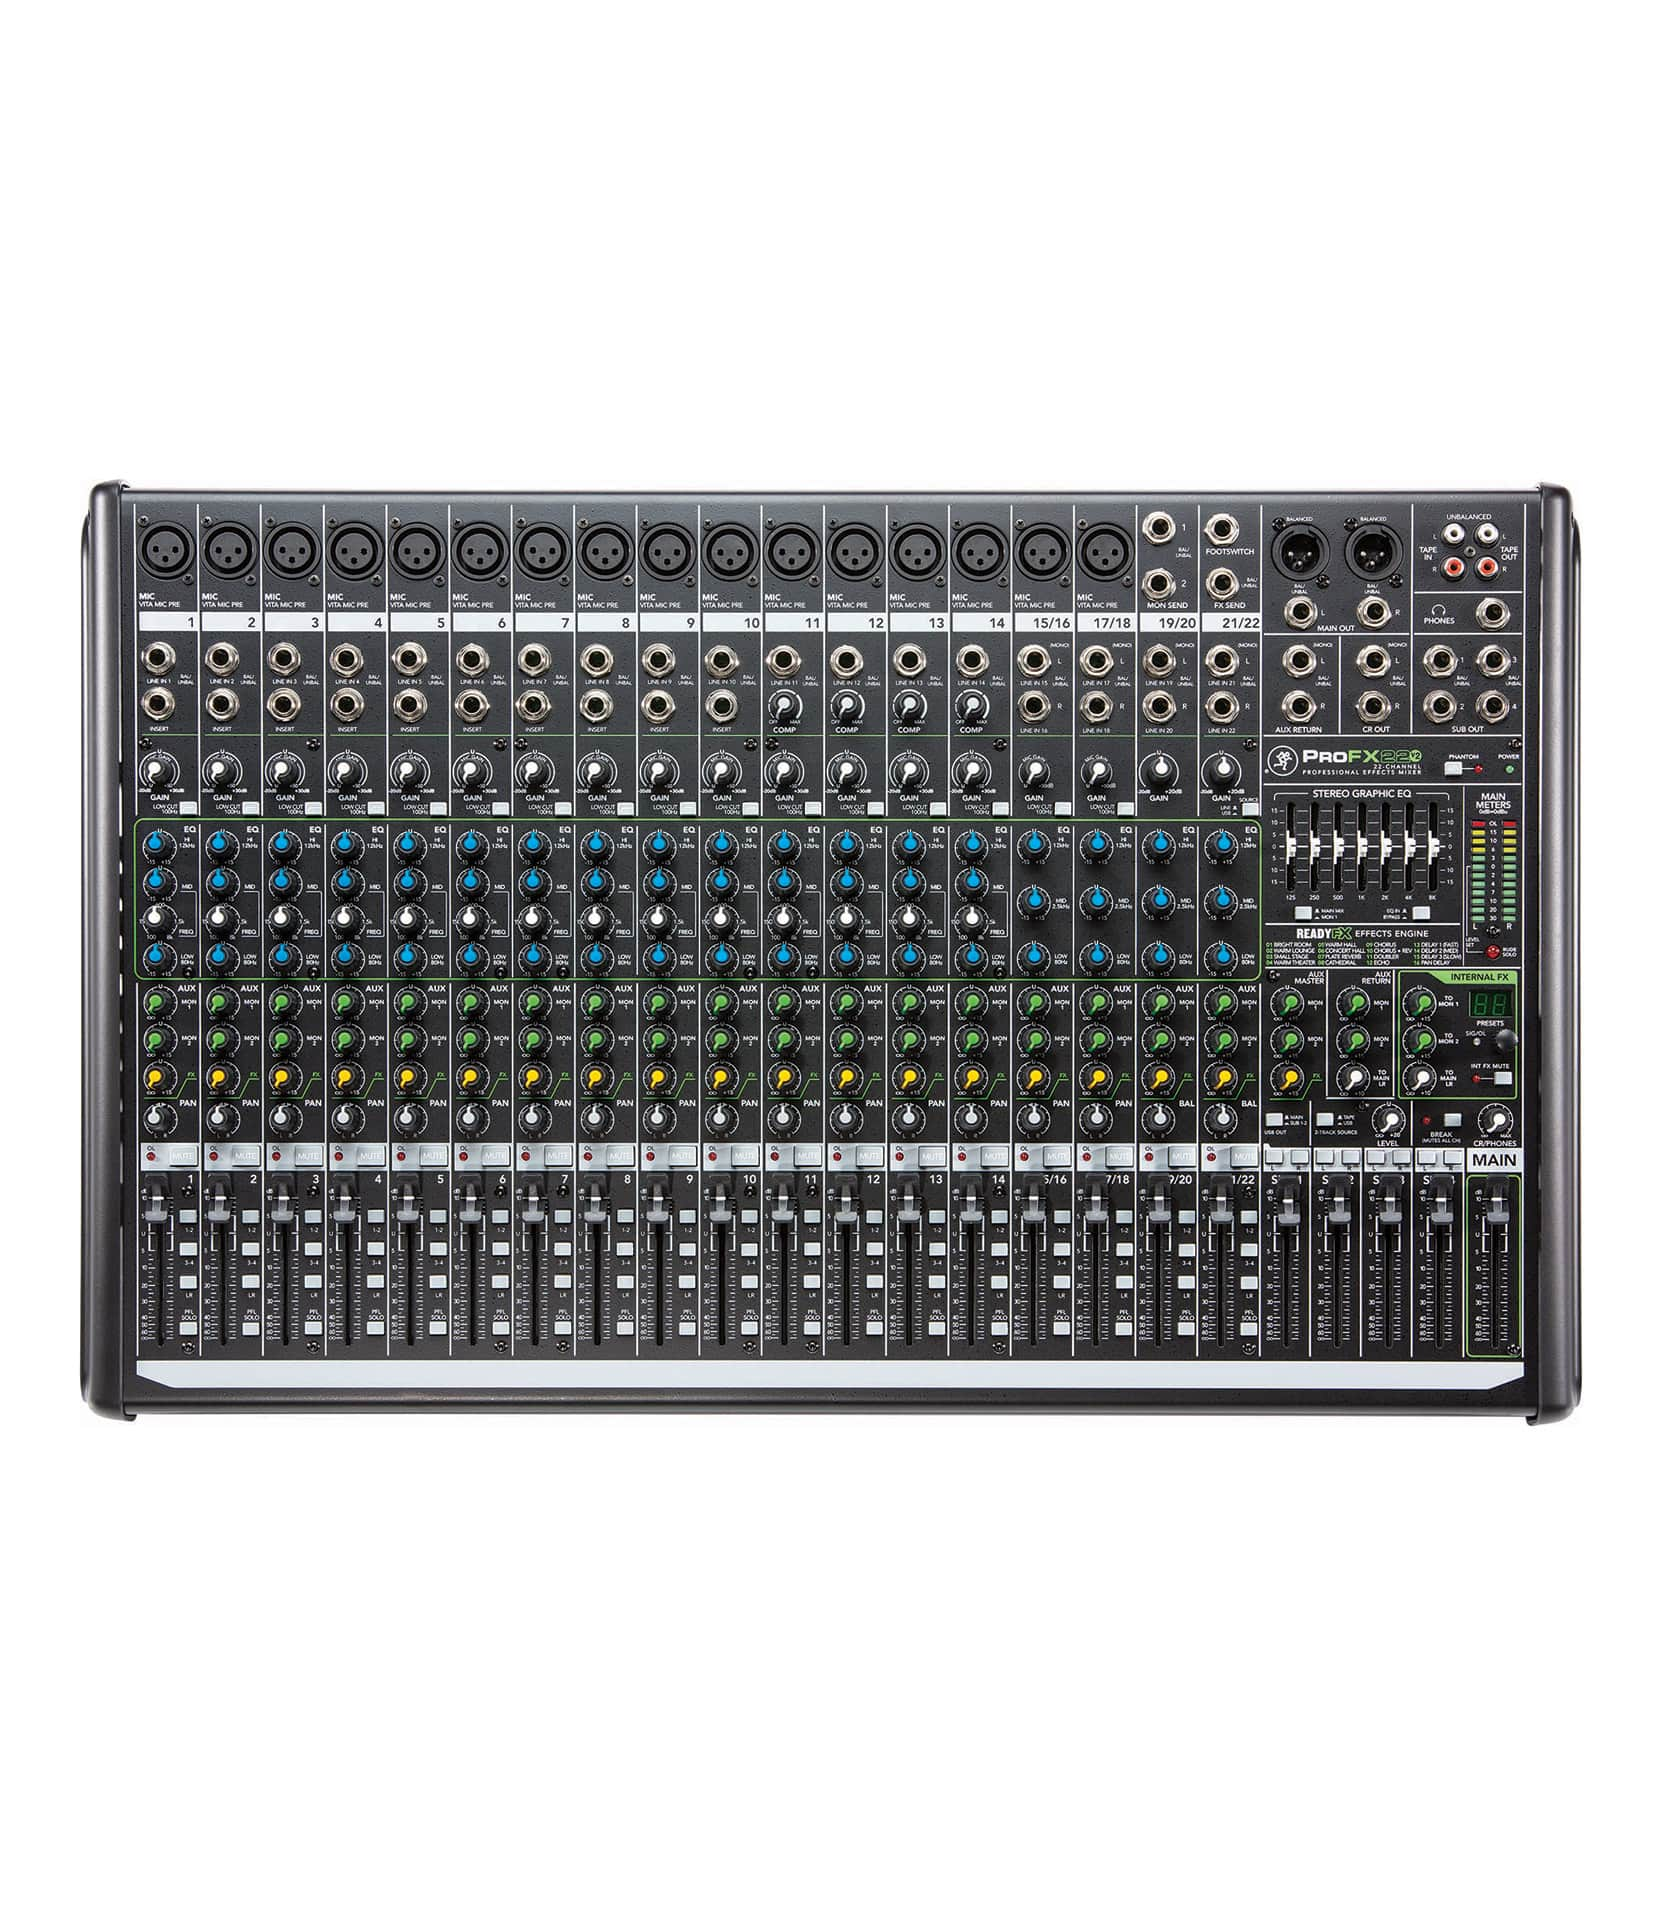 ProFX22v2 UK 22 channel 4 Bus Effects Mixer